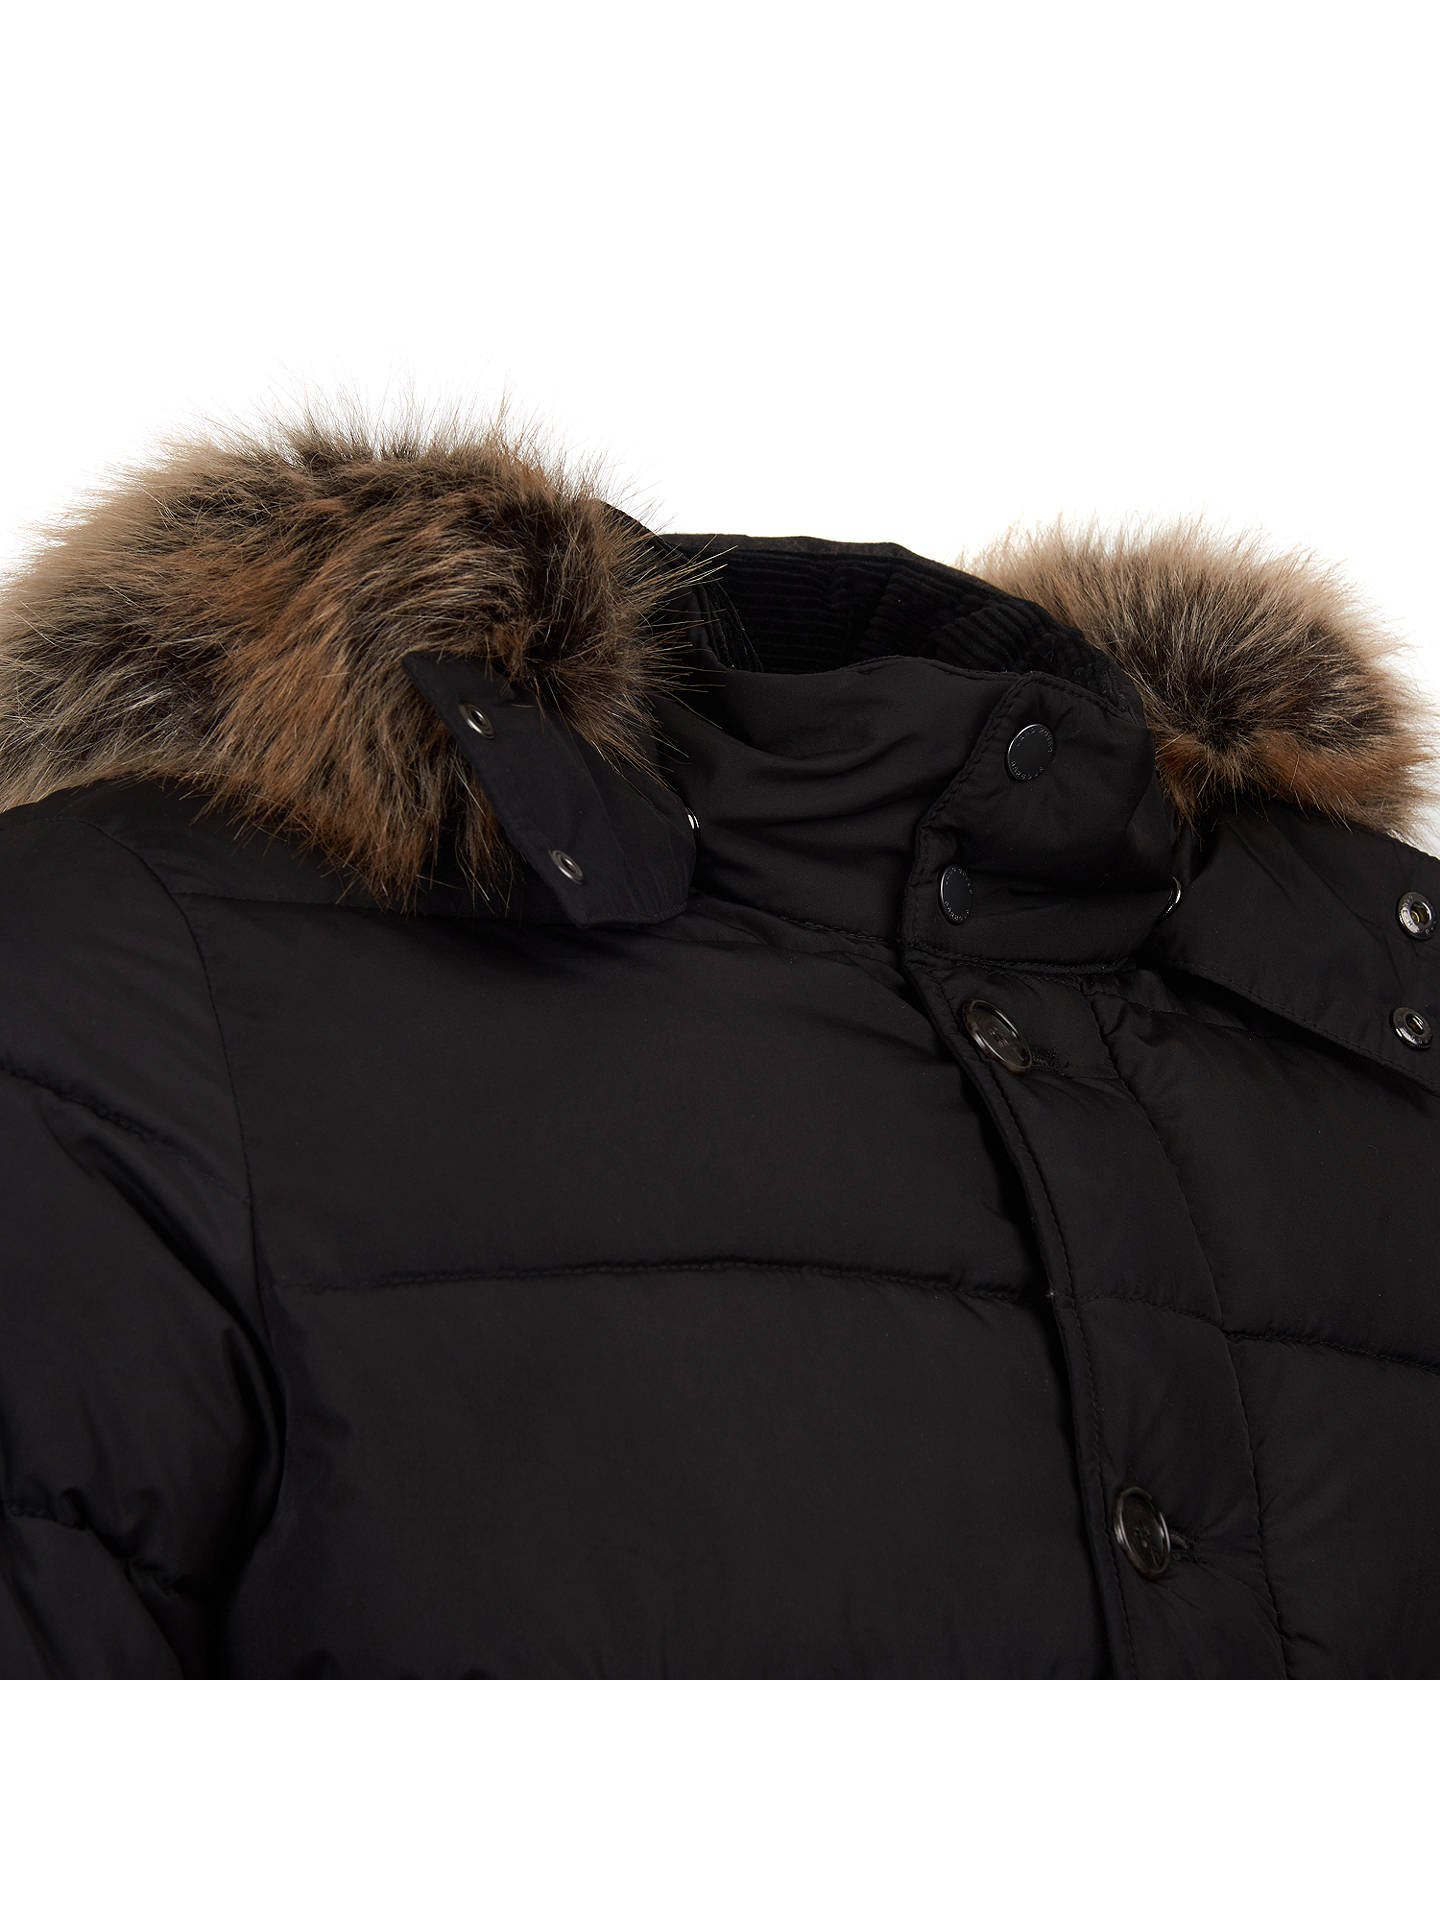 BuyBarbour Fusta Baffle Quilted Jacket, Black, XL Online at johnlewis.com